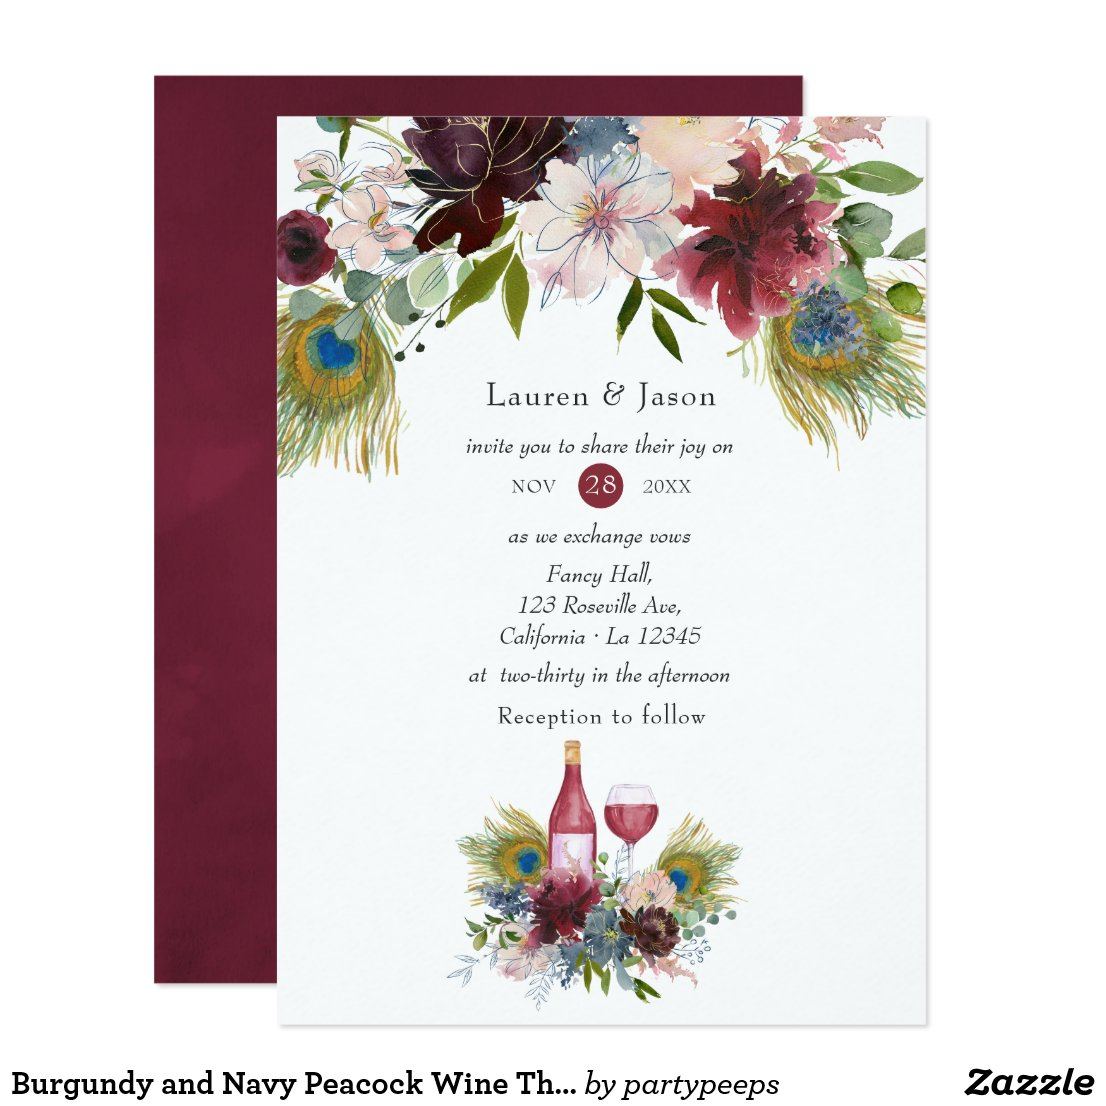 Burgundy and Navy Peacock Wine Themed Wedding Invitation